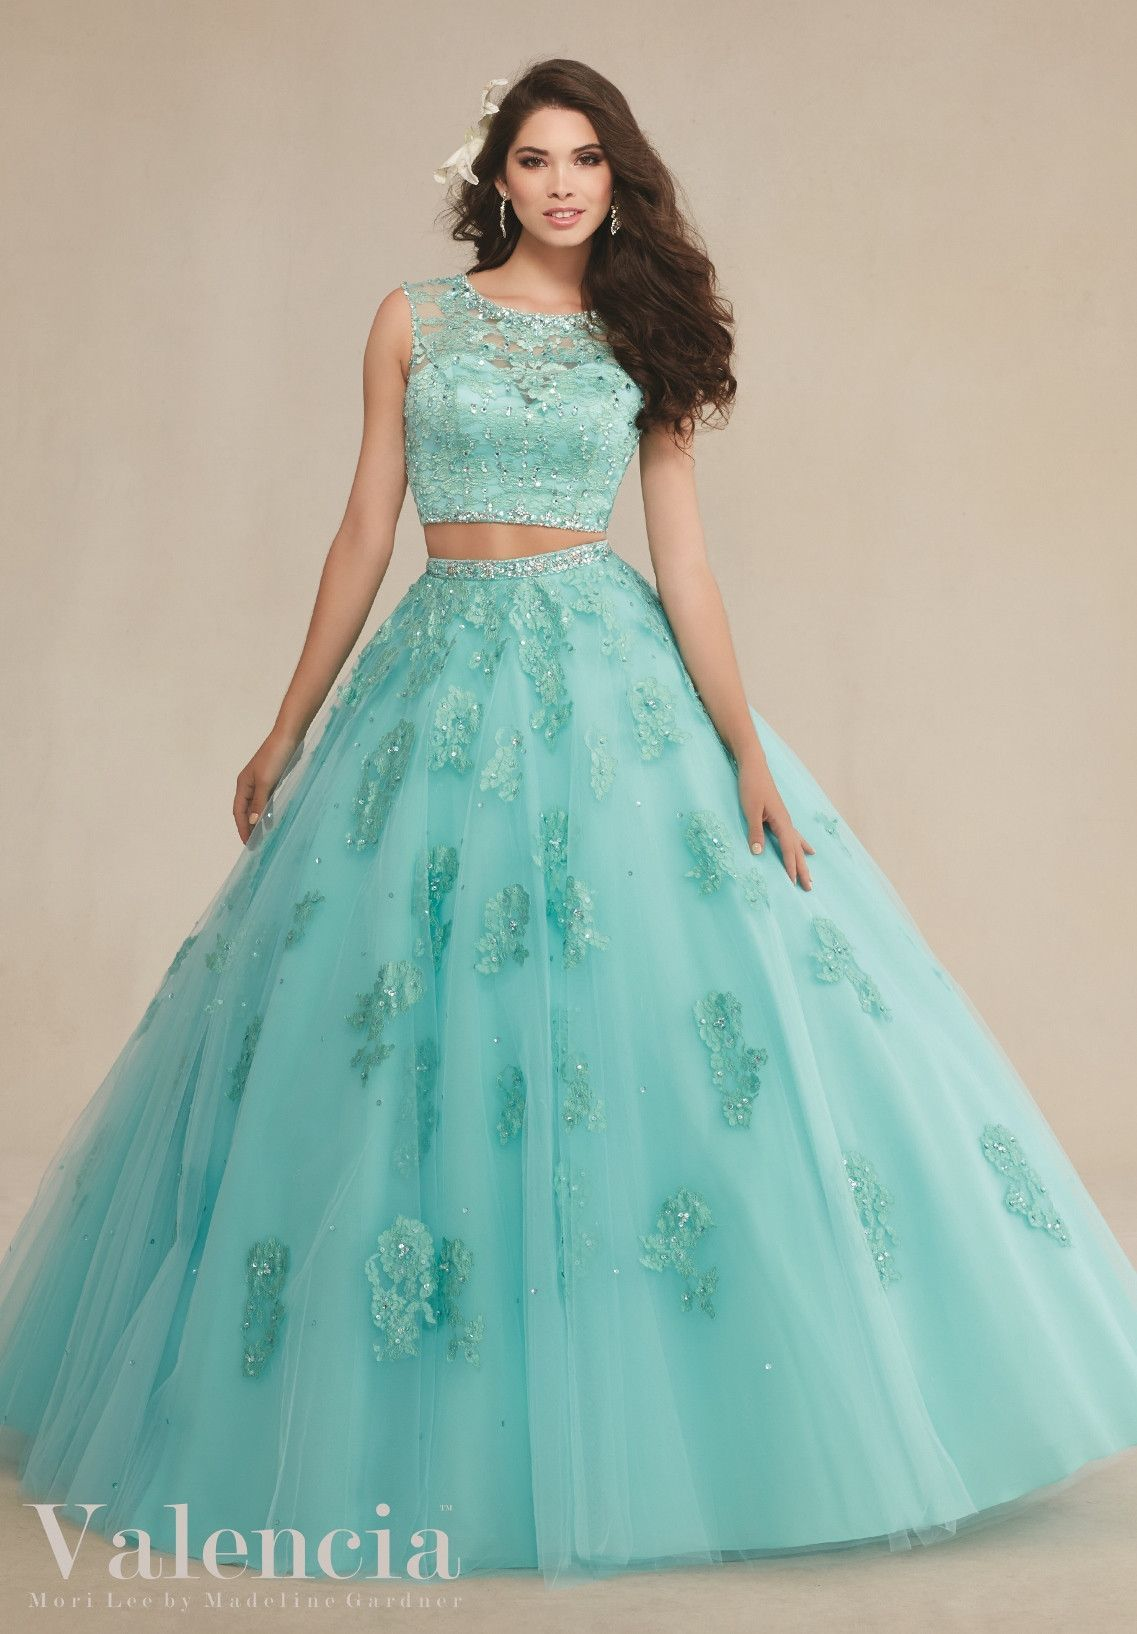 Mori Lee Valencia Quinceanera Dress 89088 | 15 años, Quinceañera y ...